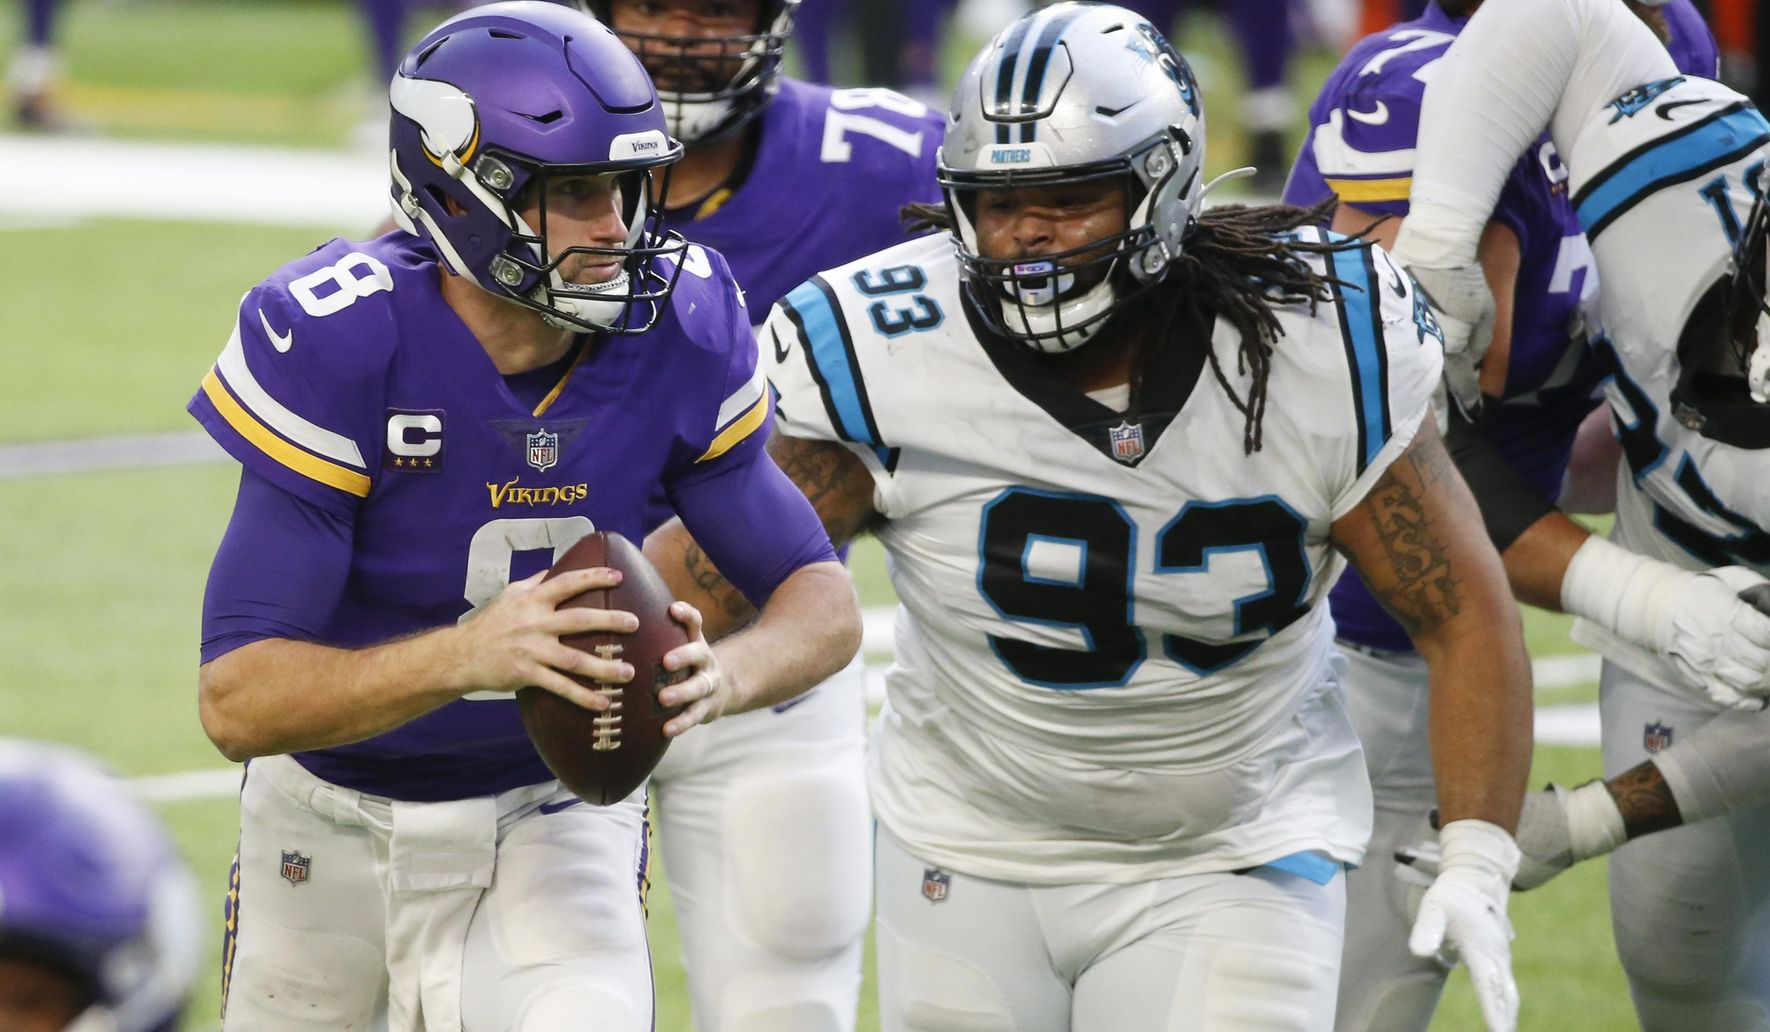 Panthers_vikings_football_32973_c0-148-3528-2205_s1770x1032